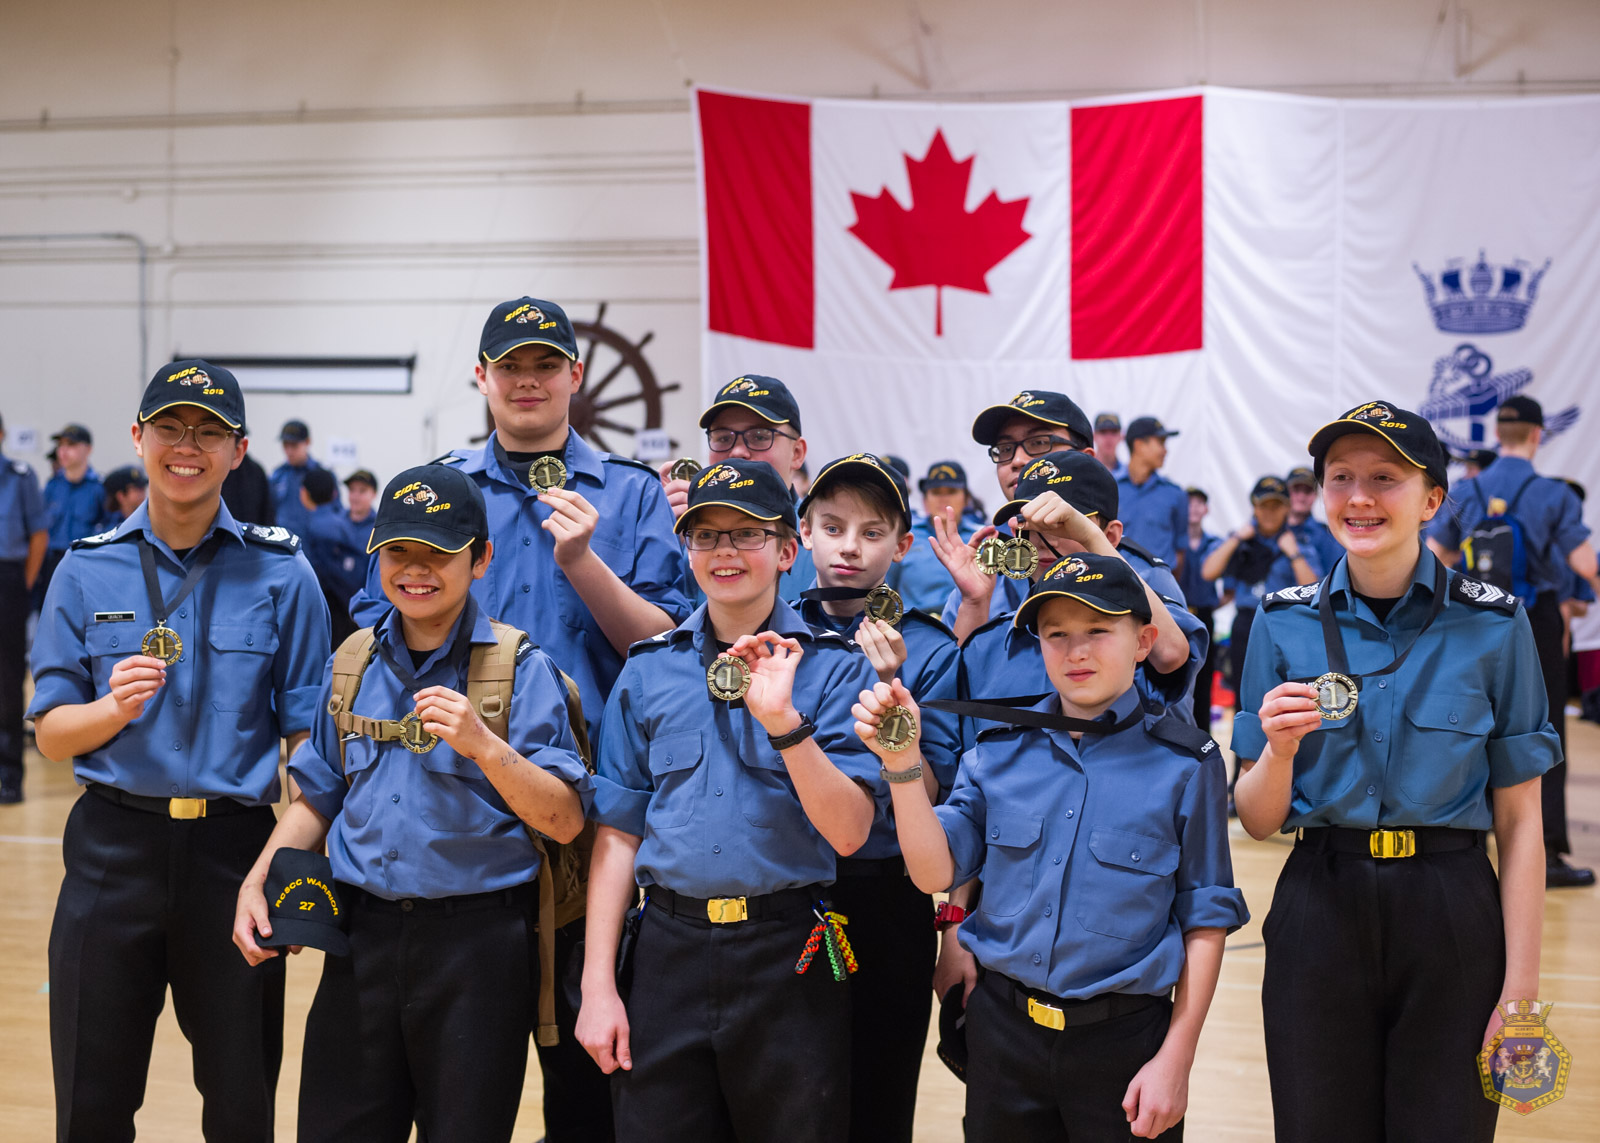 Navy League Alberta | Sea Cadet Corps